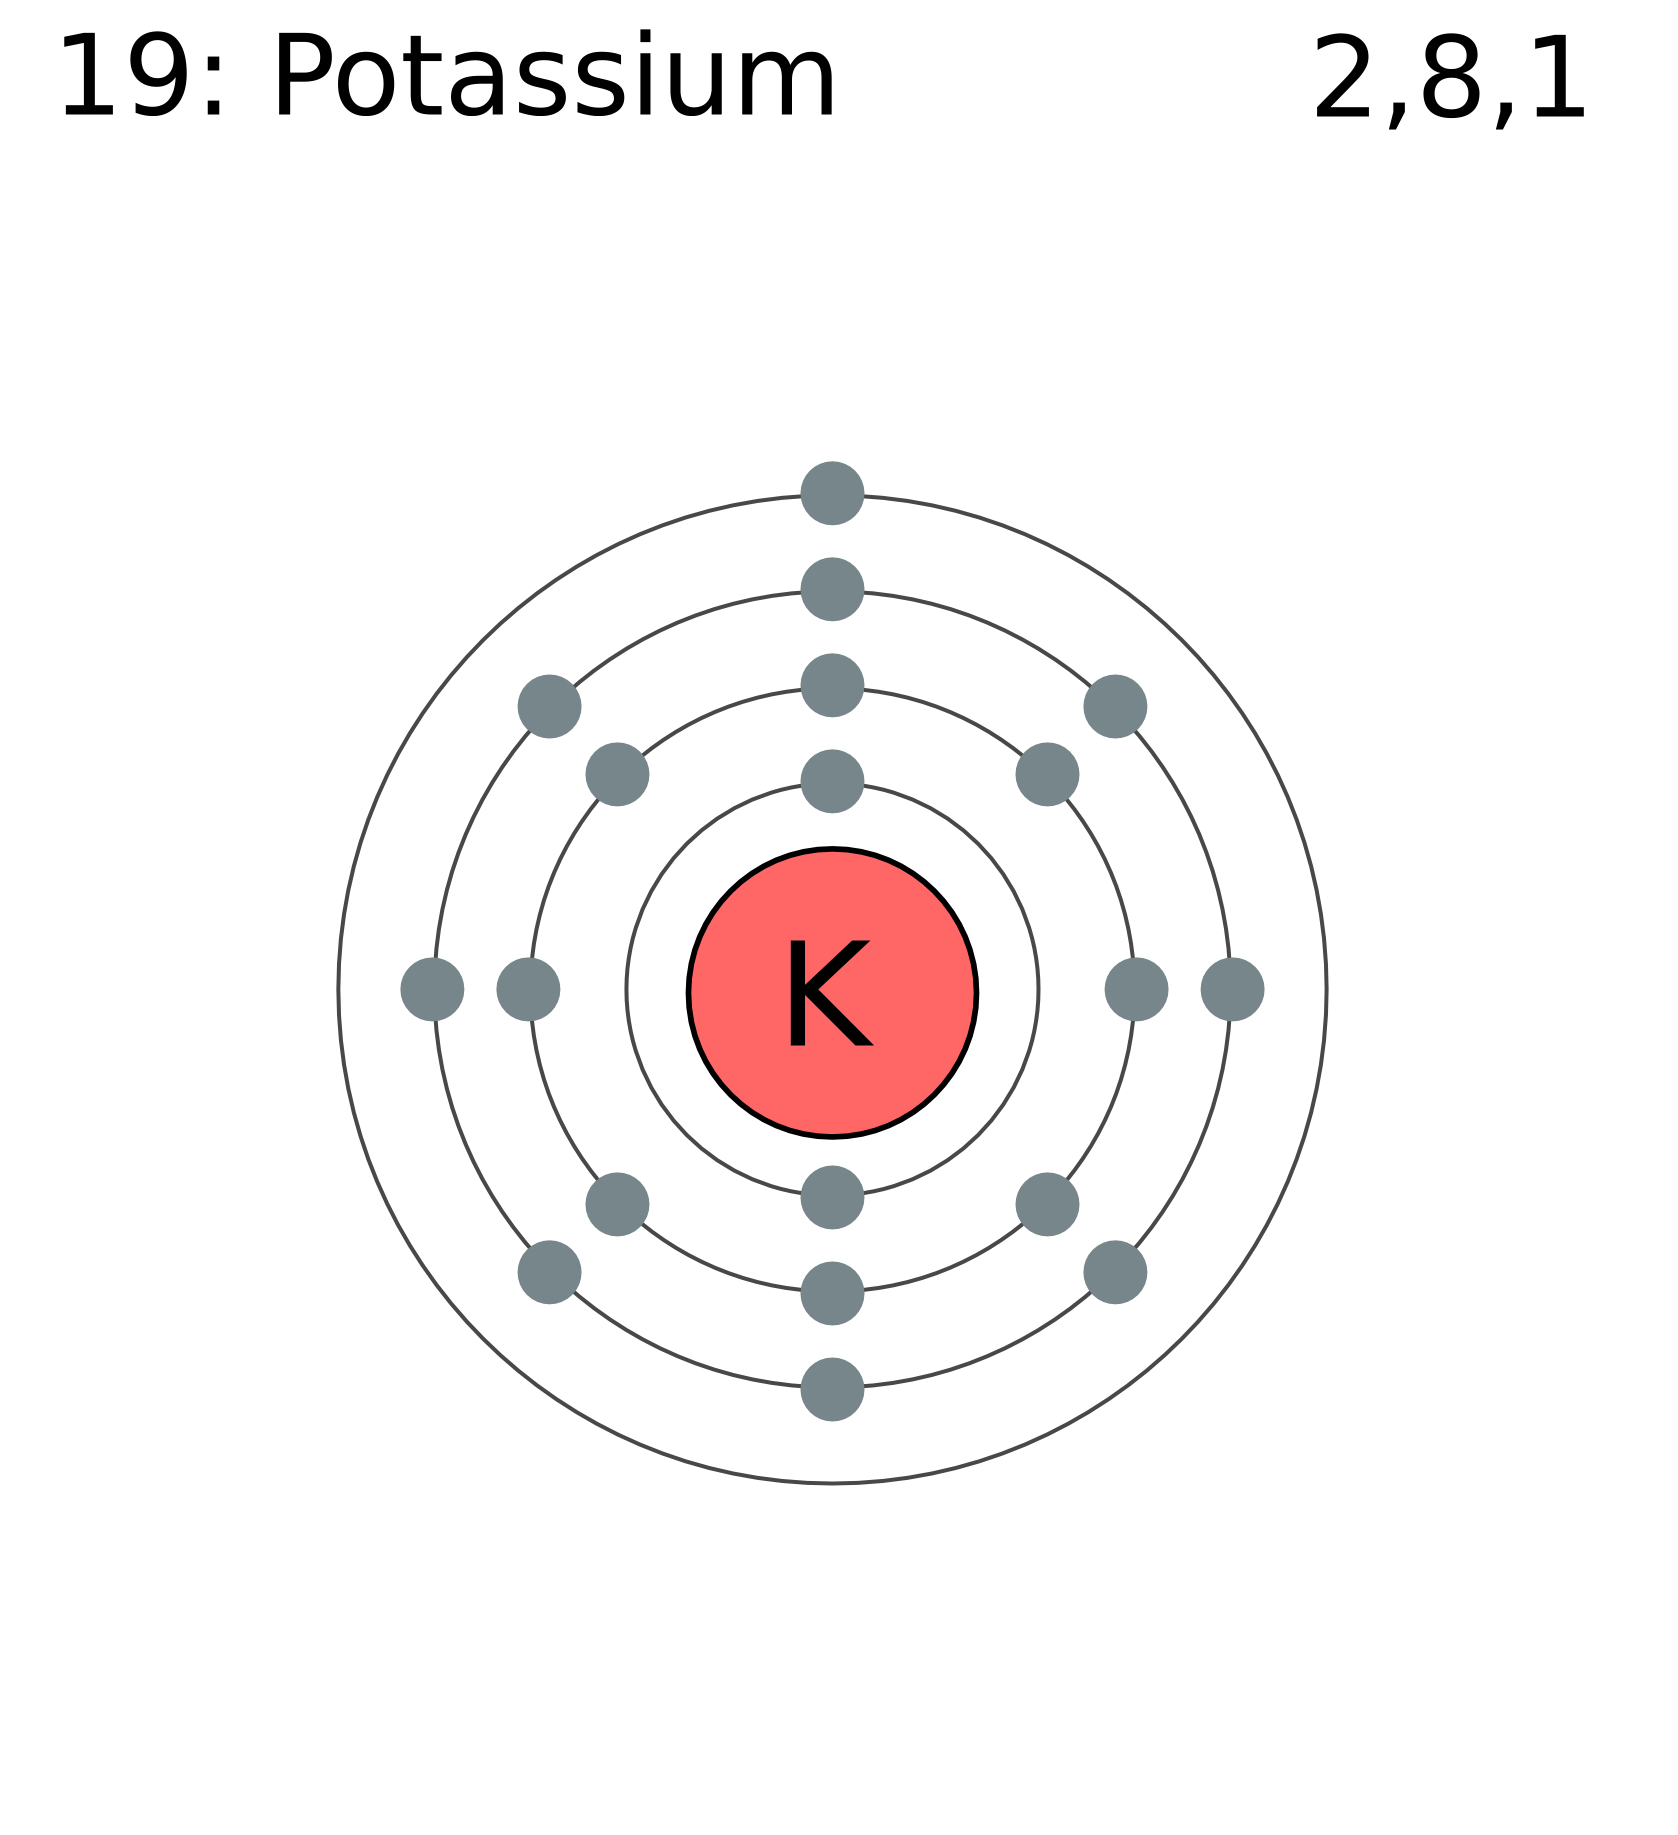 medium resolution of potassium is the third most abundant mineral in human body it is the chemical element with the symbol k atomic number 19 potassium is a very important